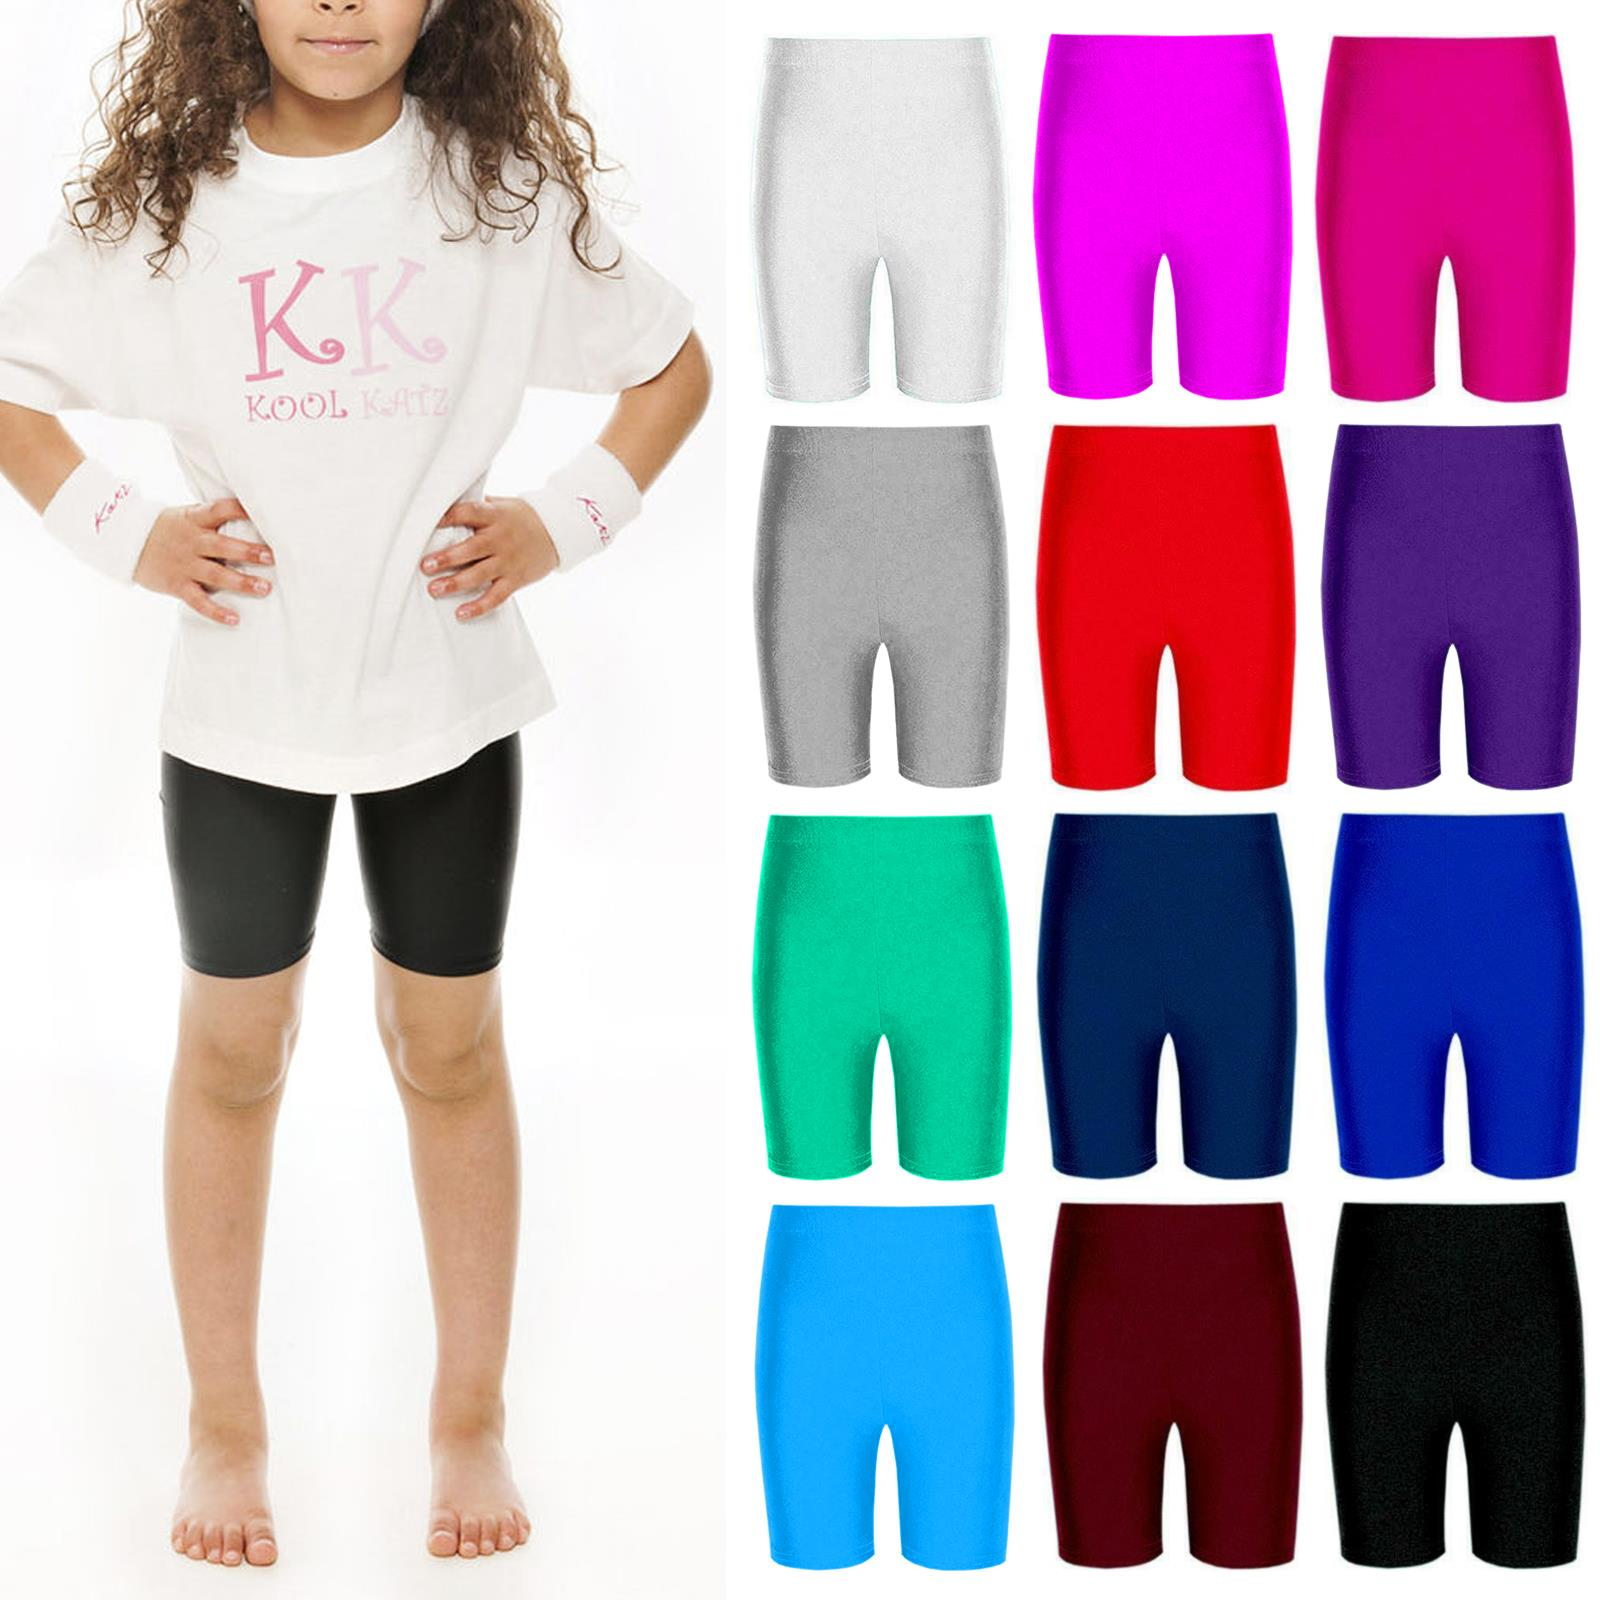 GYMNASTICS NYLON LYCRA CYCLE SHORTS IN 7 COLOURS DANCE